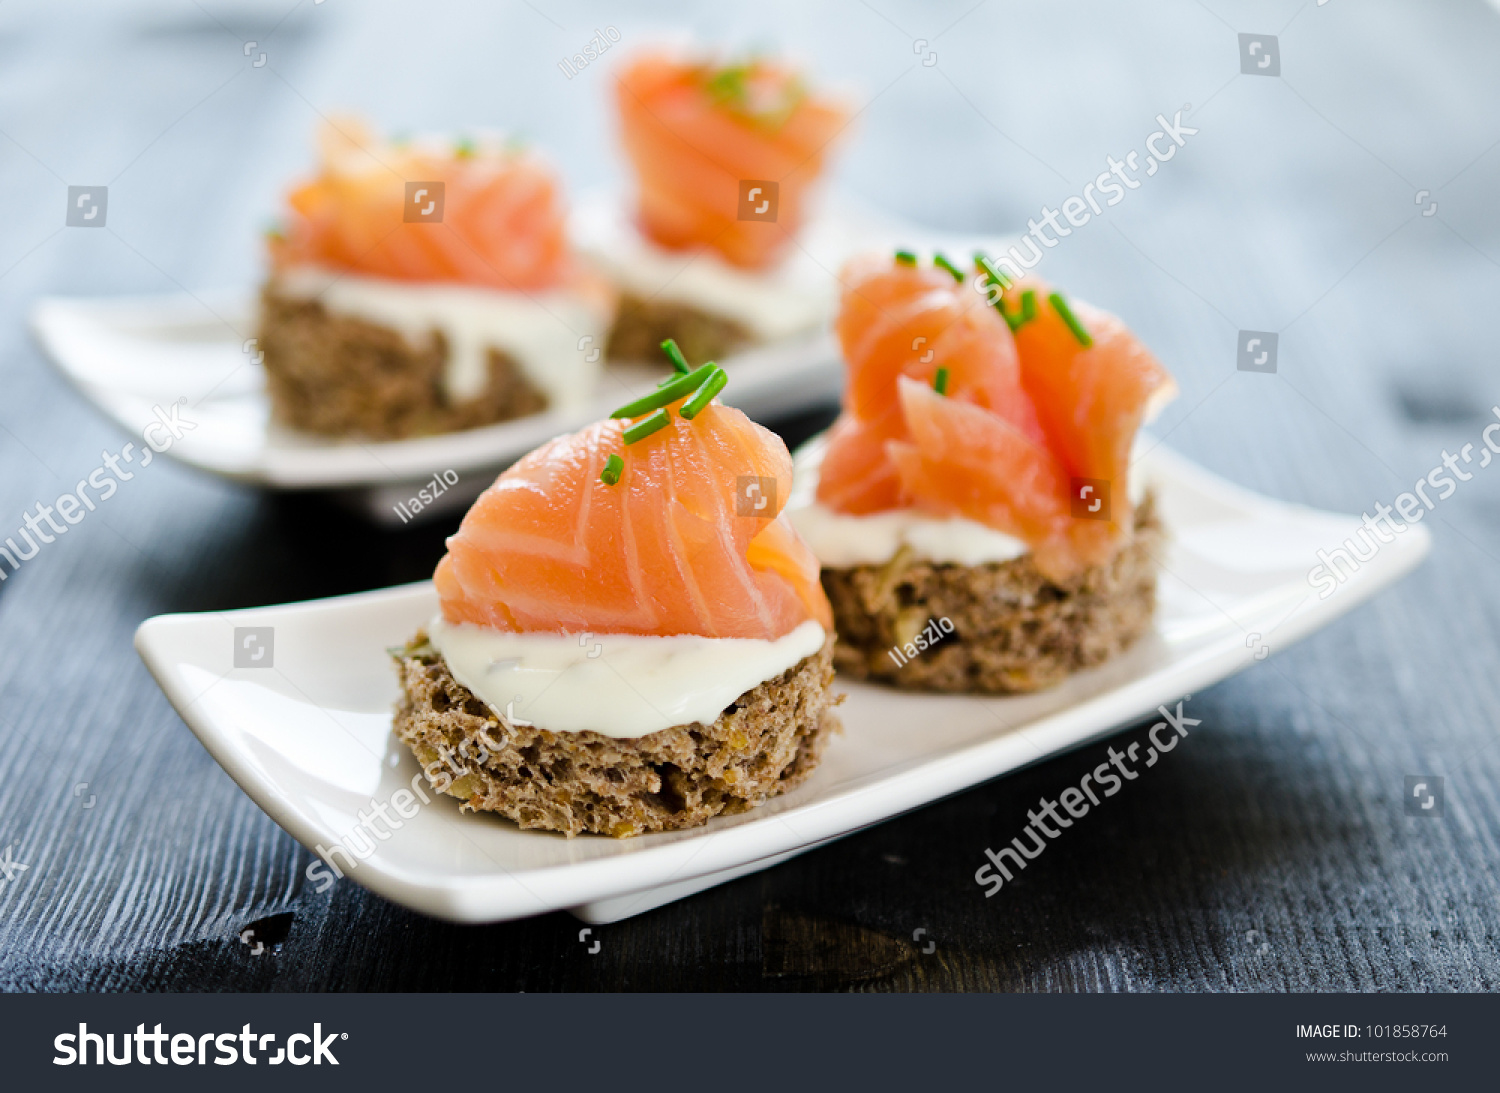 Canapes smoked salmon cream cheese stock photo 101858764 for Smoked salmon cream cheese canape